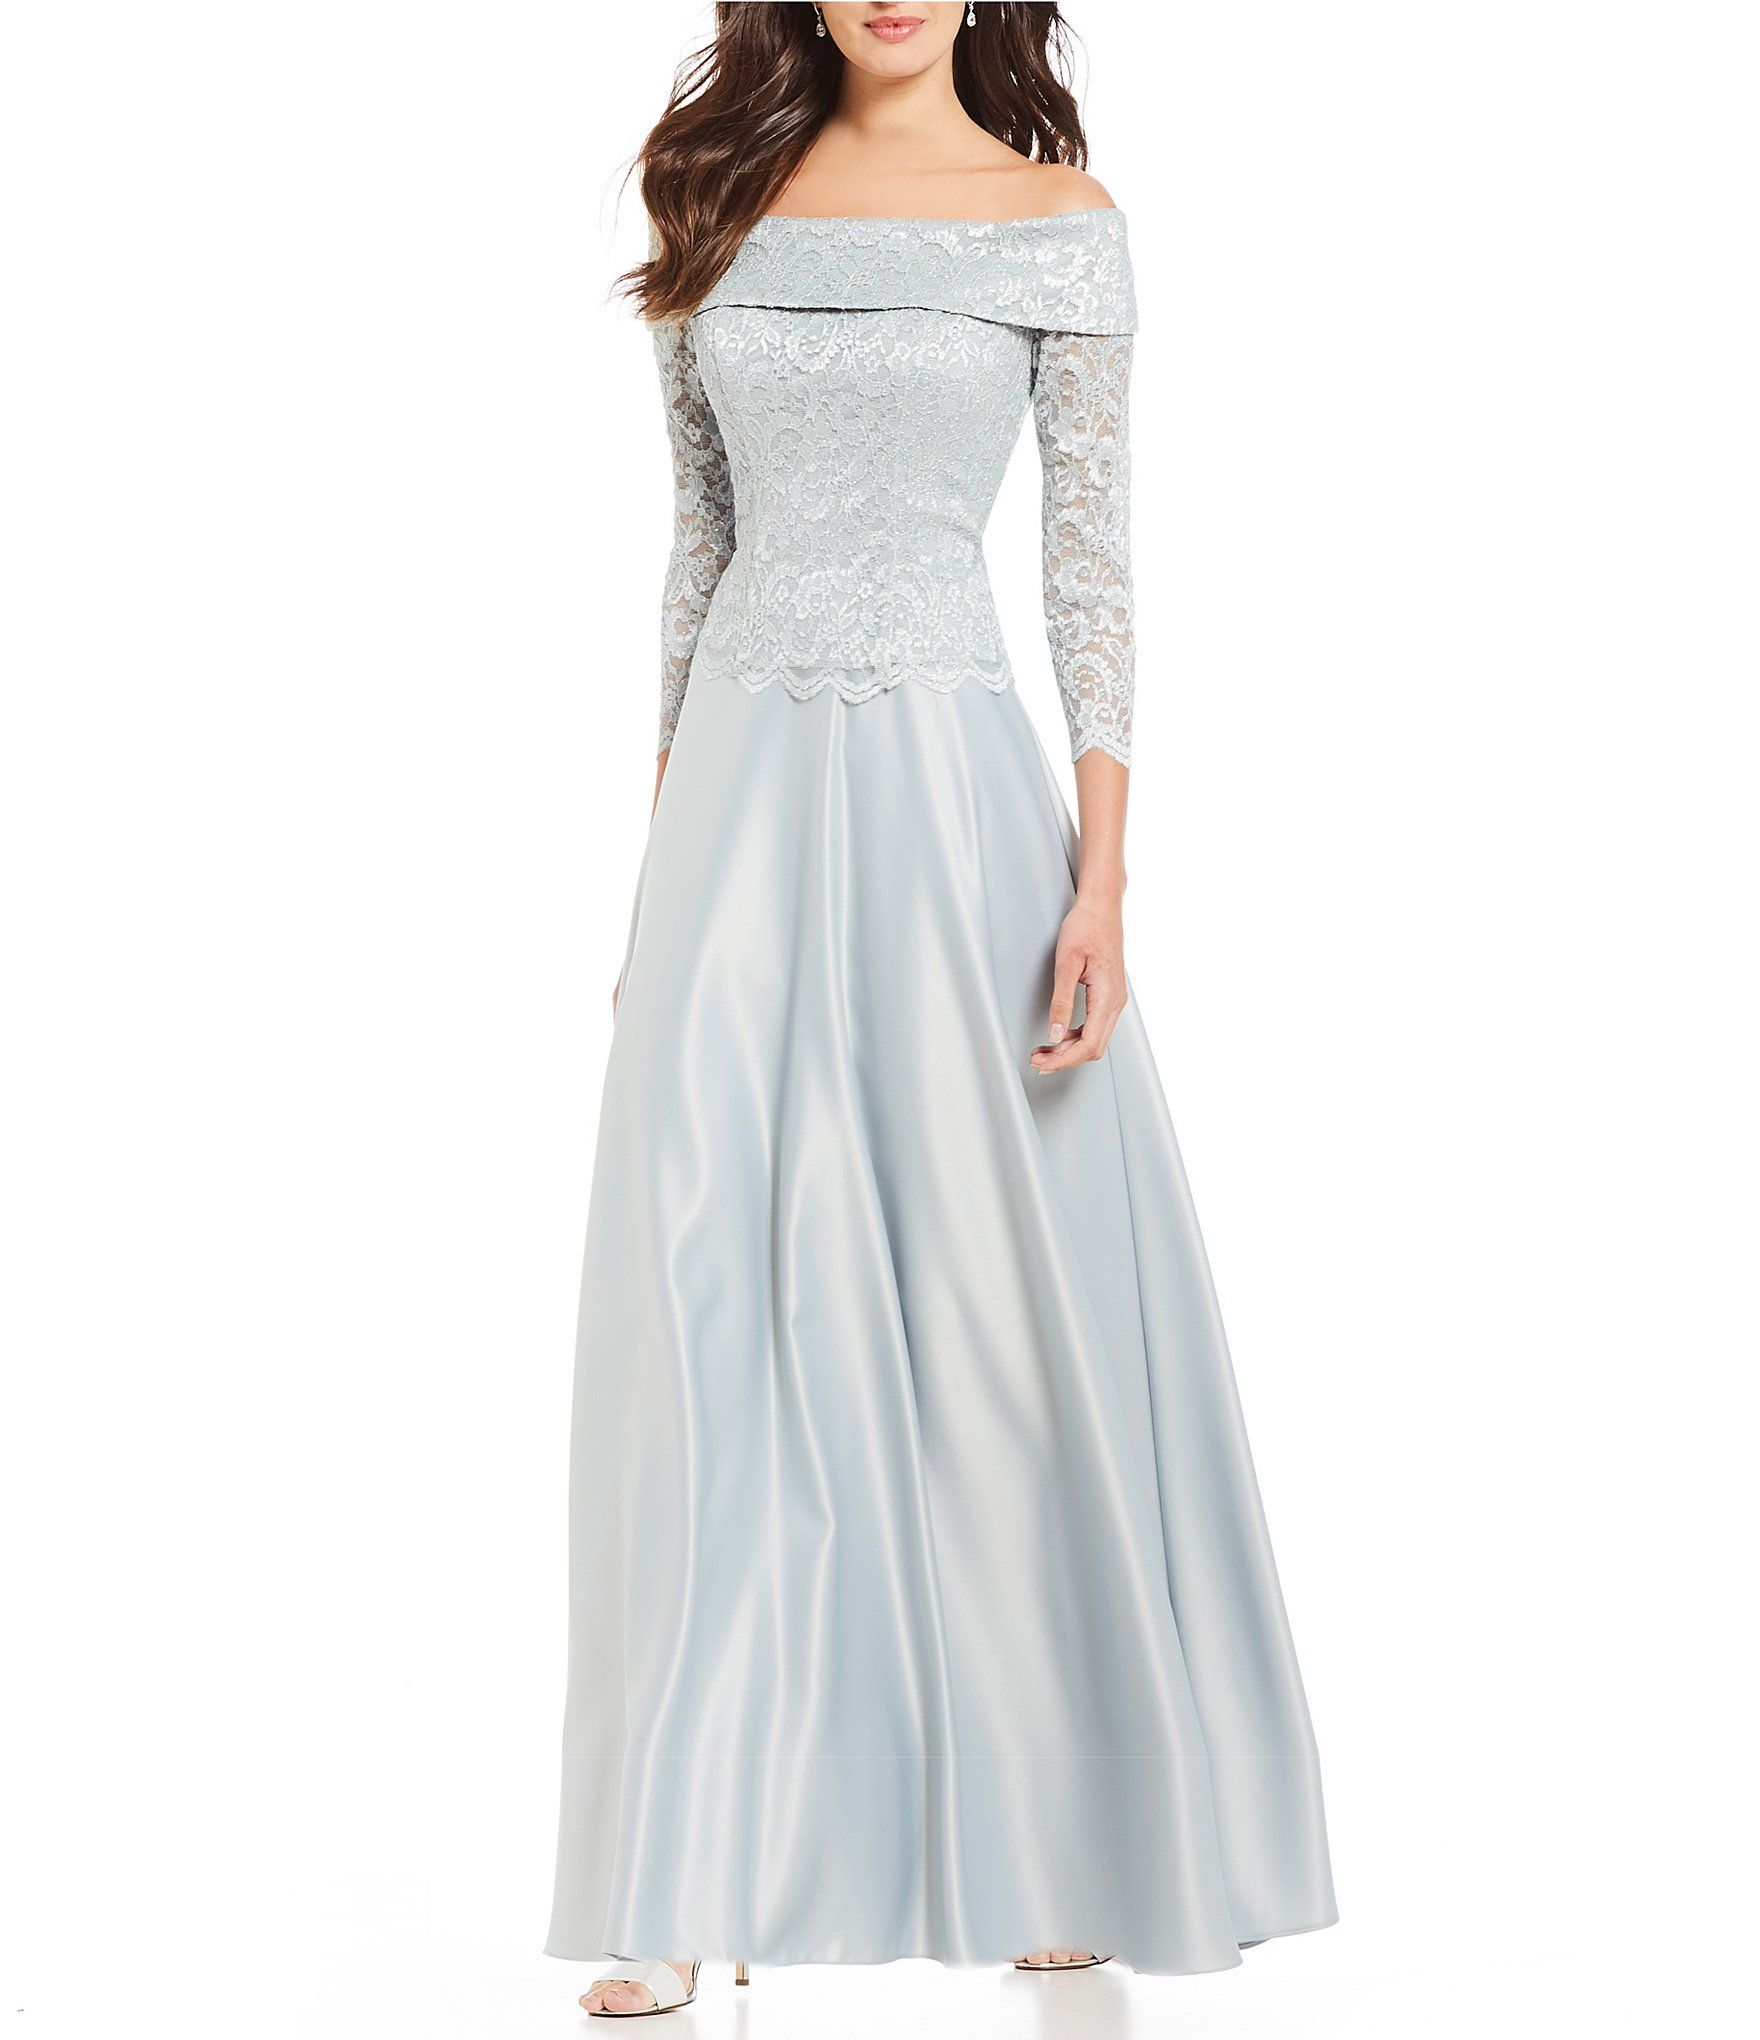 e017ef66fbc Shop for Cachet Off-the-Shoulder Lace Ball Gown at Dillards.com. Visit  Dillards.com to find clothing